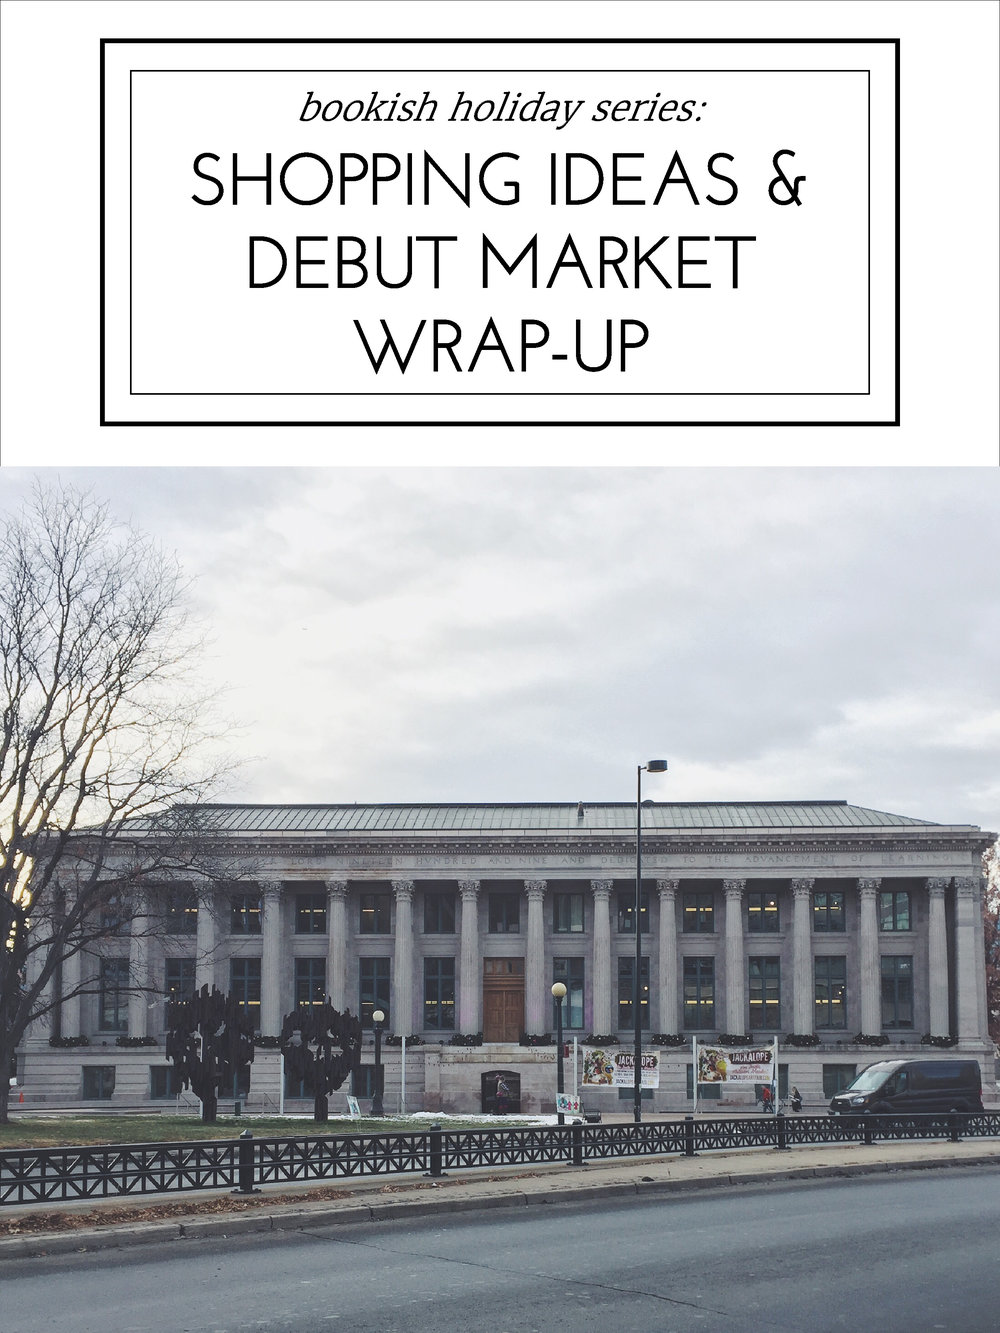 Bookish Holiday Series: Shopping Ideas & Debut Market Wrap-Up